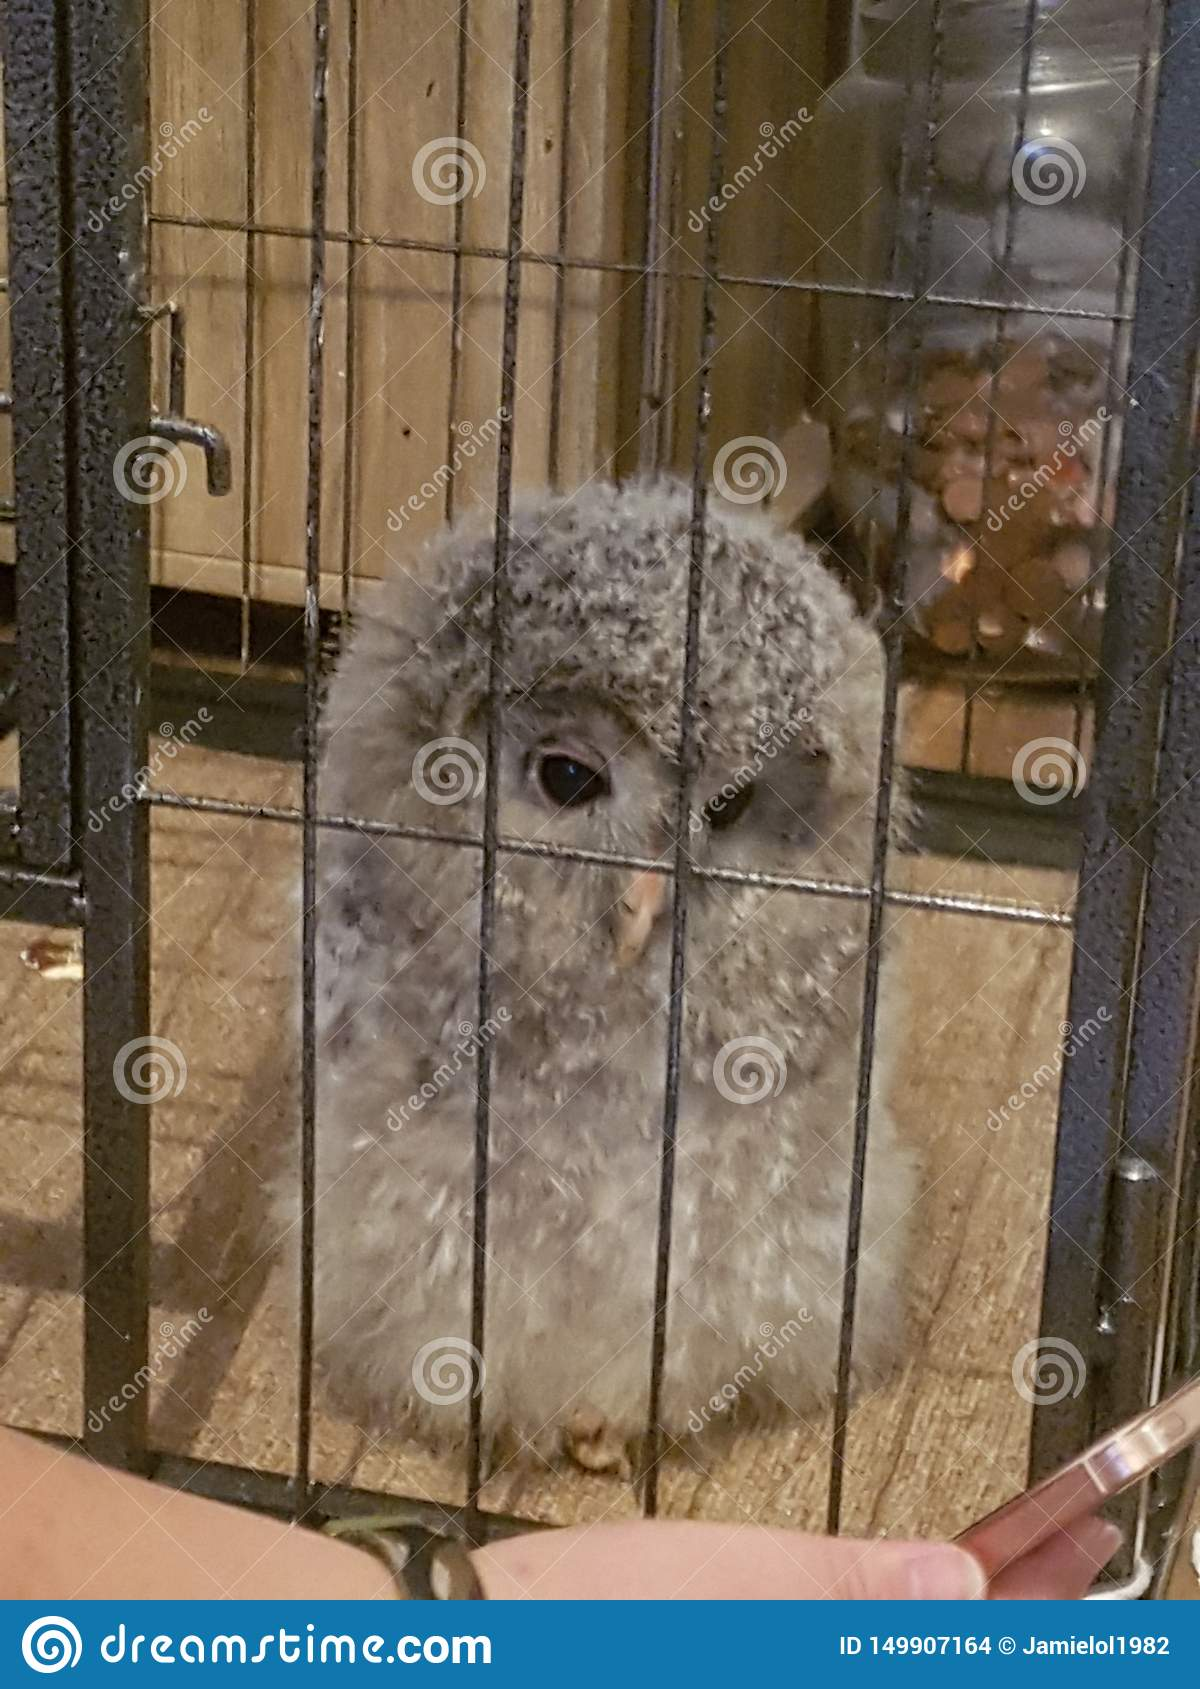 this is my pet ural owl hes so cute n fluffy